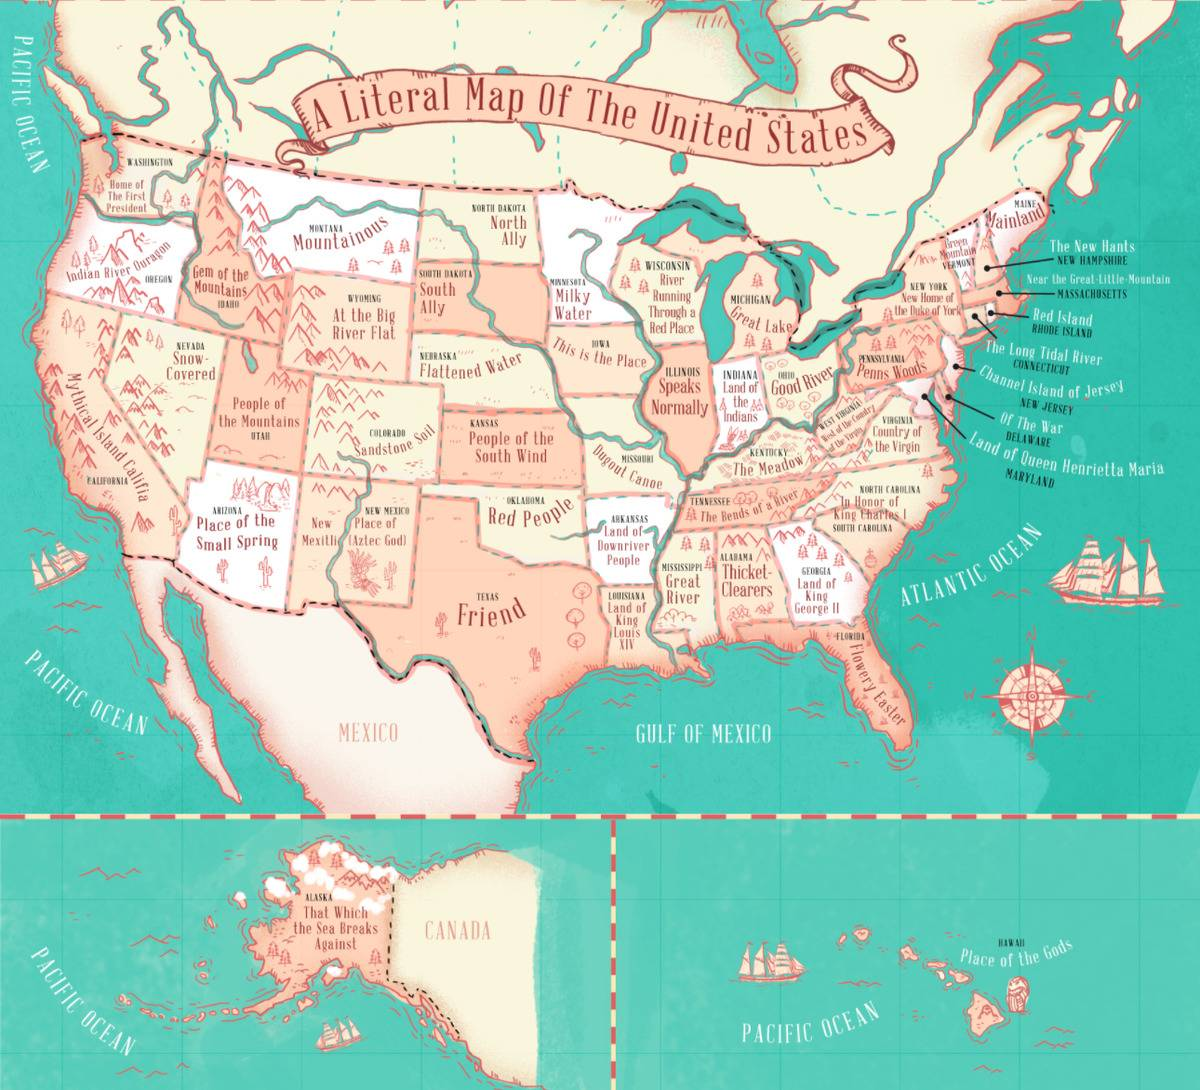 A map shows what each state's name means.